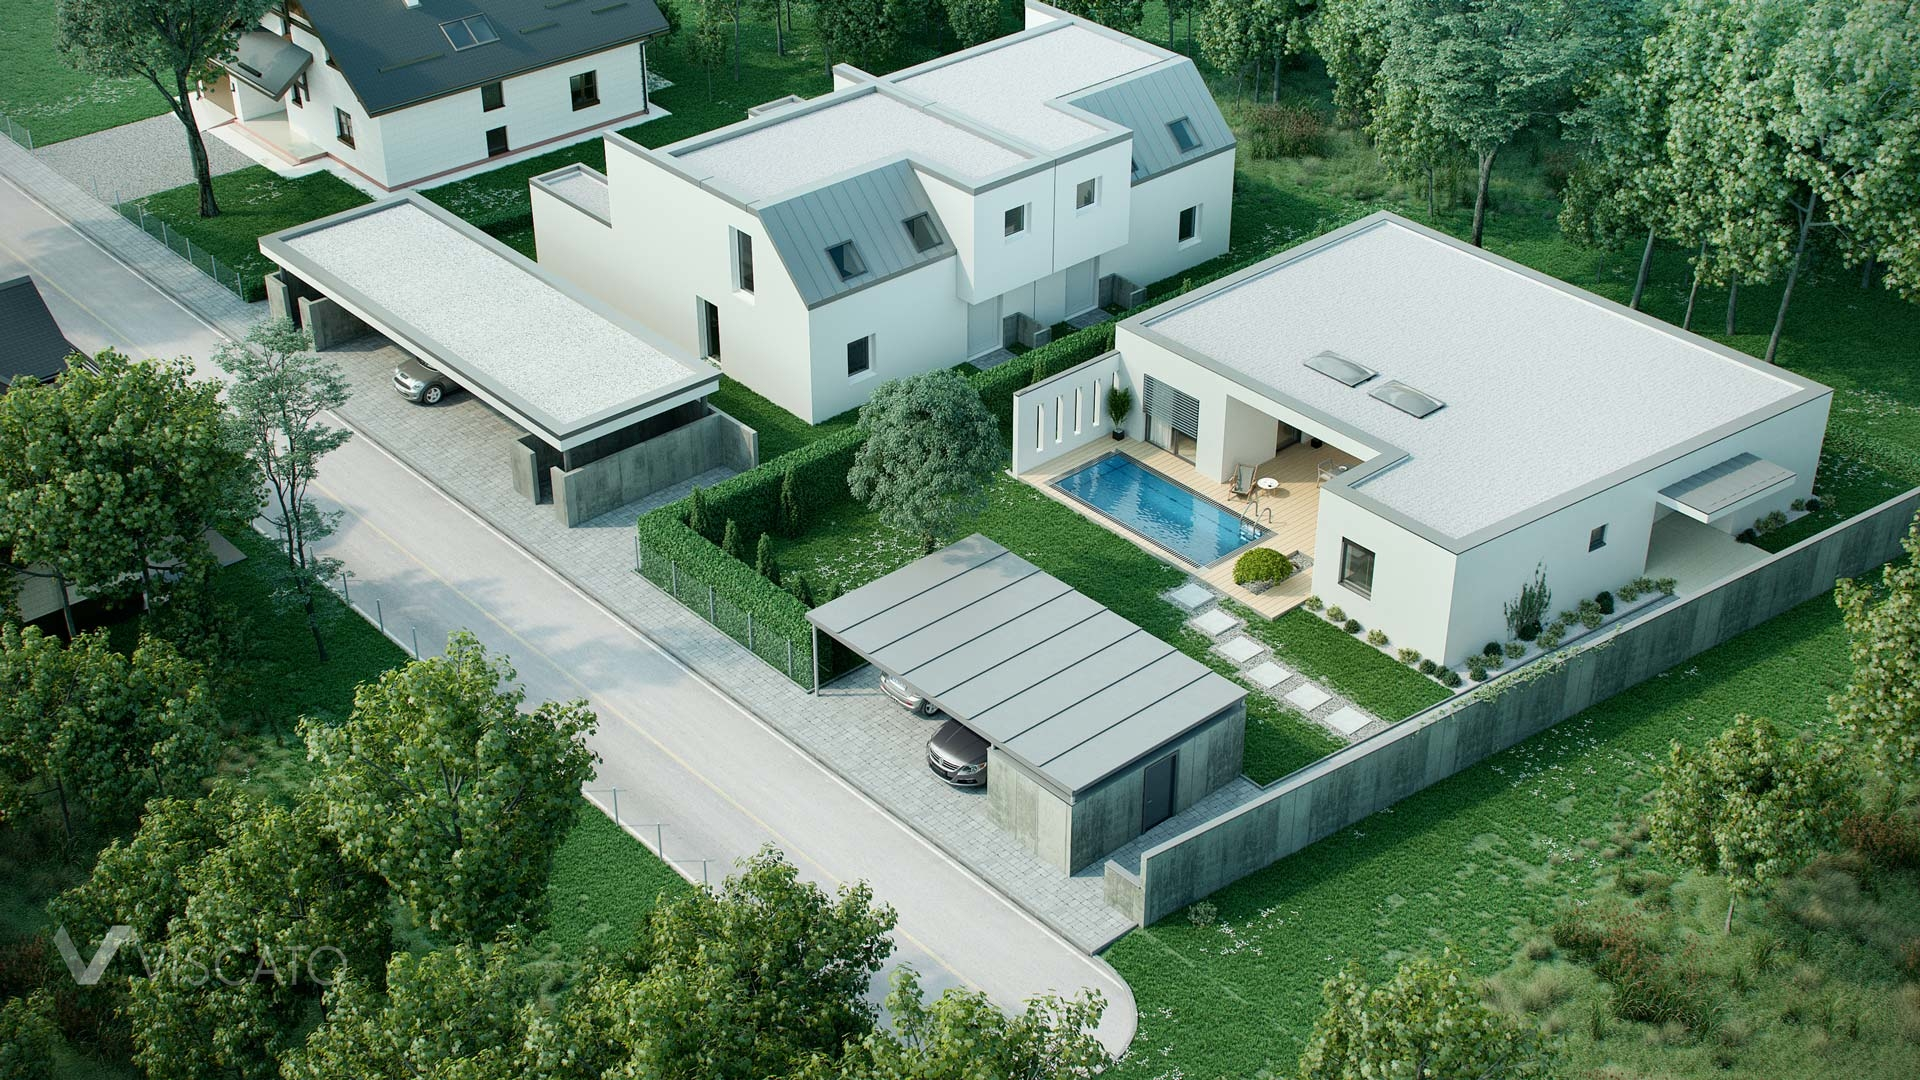 Lifelike renderings of a single-family house located in suburbs Viscato